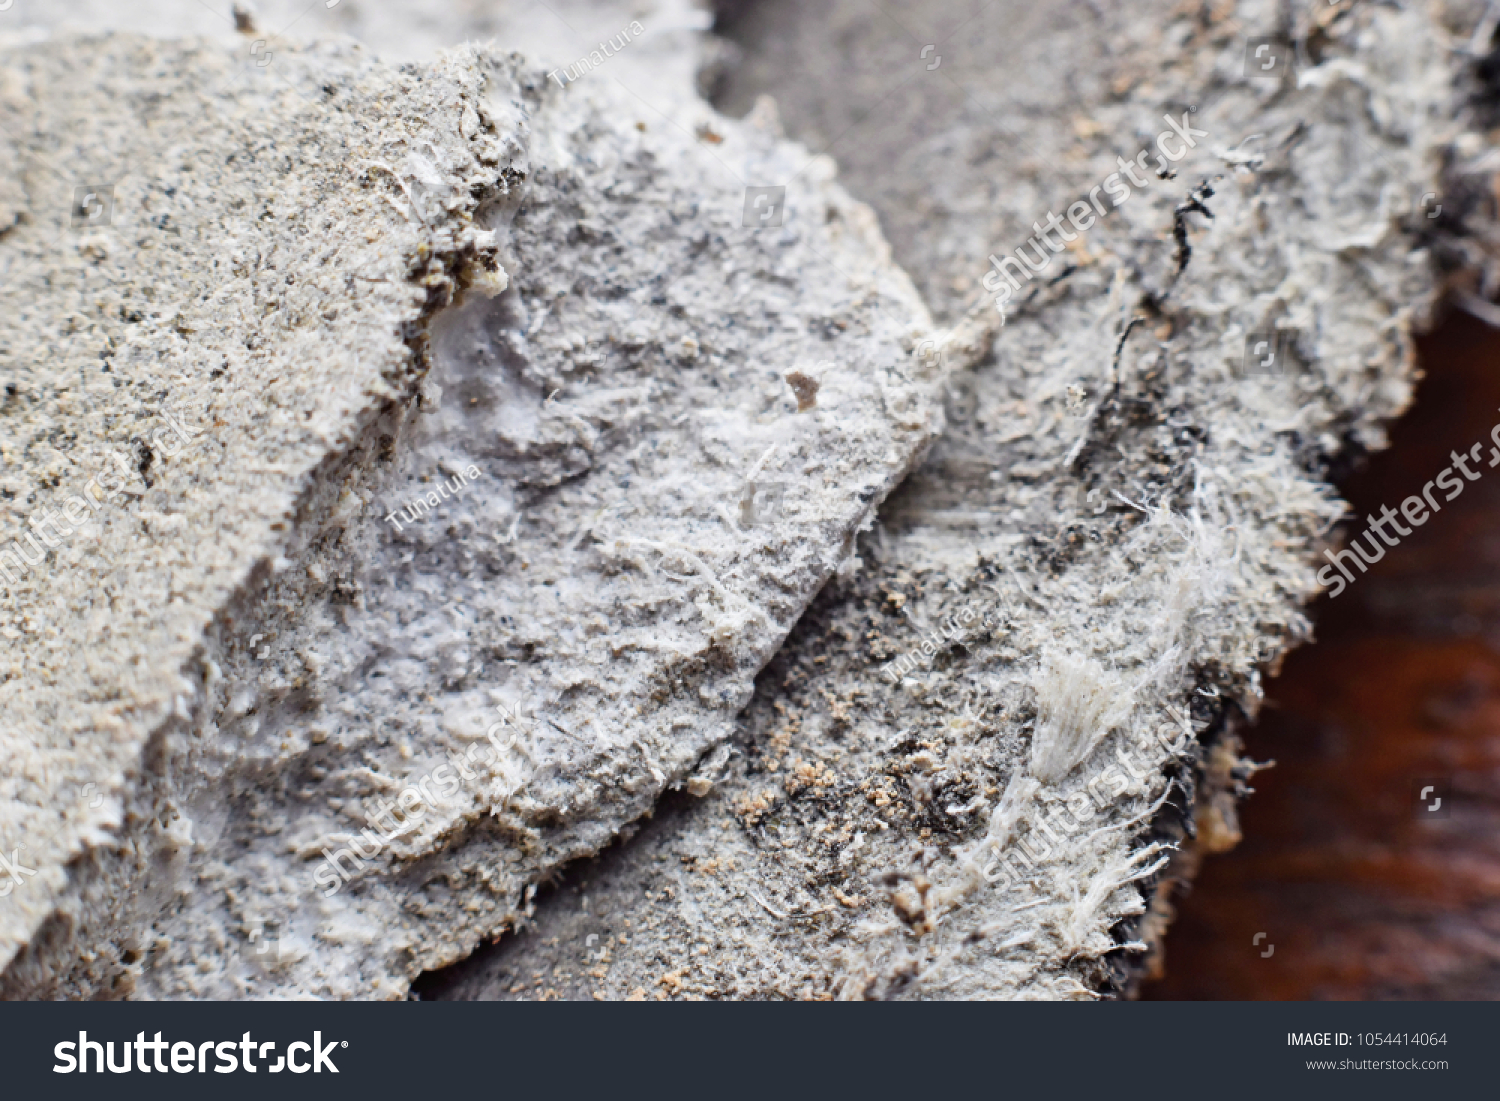 Asbestos Fibers In Lungs : Detailed photography roof covering material asbestos stock photo